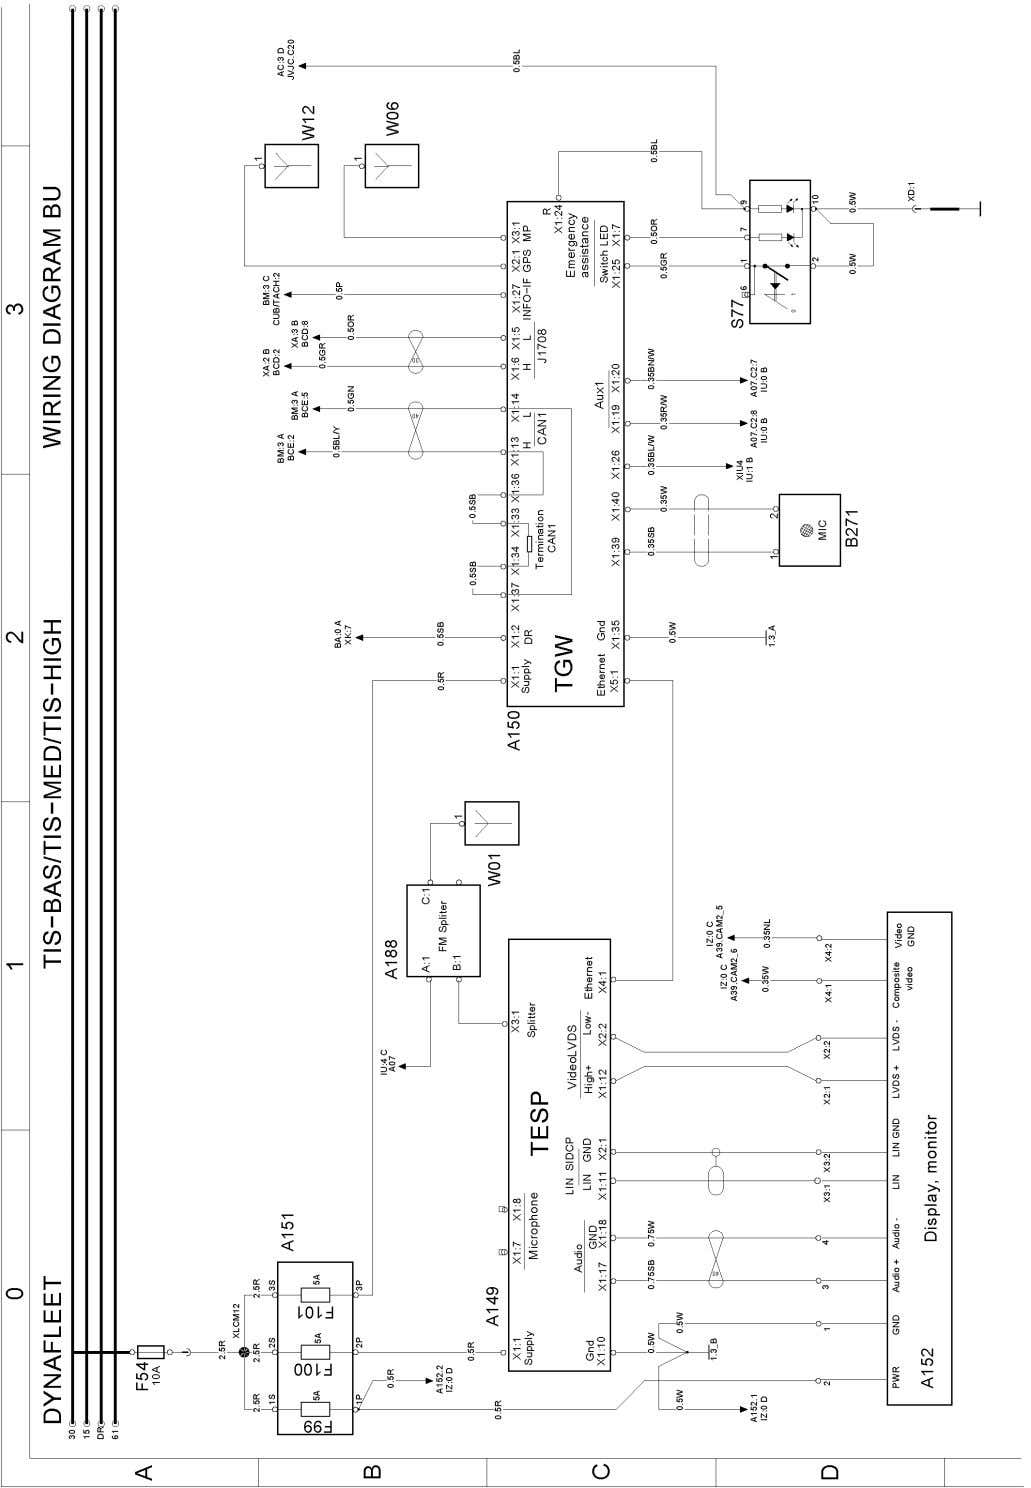 T3075463 Wiring diagram Page 17 (298)